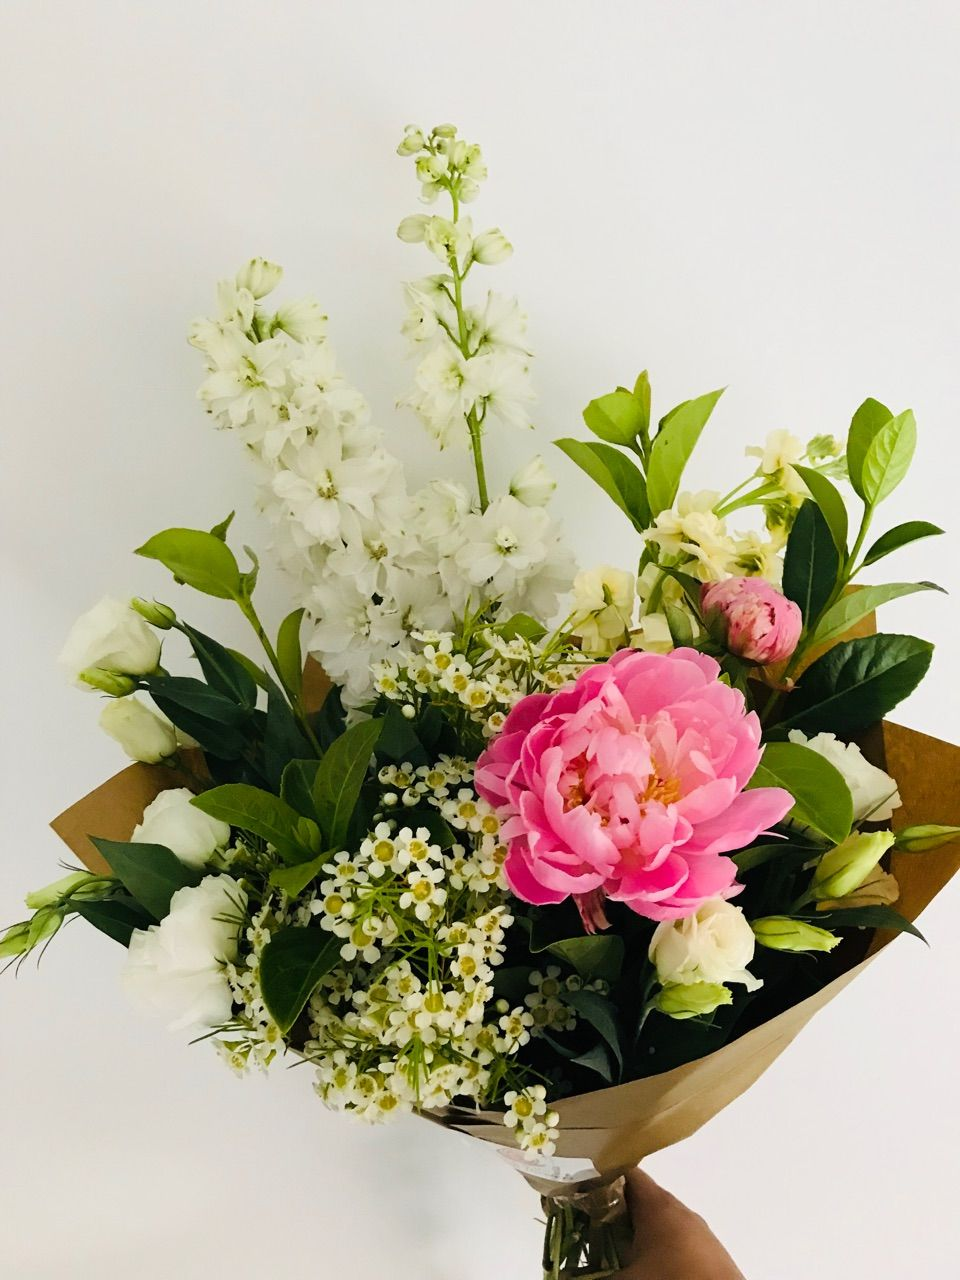 Pin by melbourne fresh flowers on christmas day special flower pin by melbourne fresh flowers on christmas day special flower delivery in melbourne melbourne fresh flowers pinterest flower delivery melbourne and izmirmasajfo